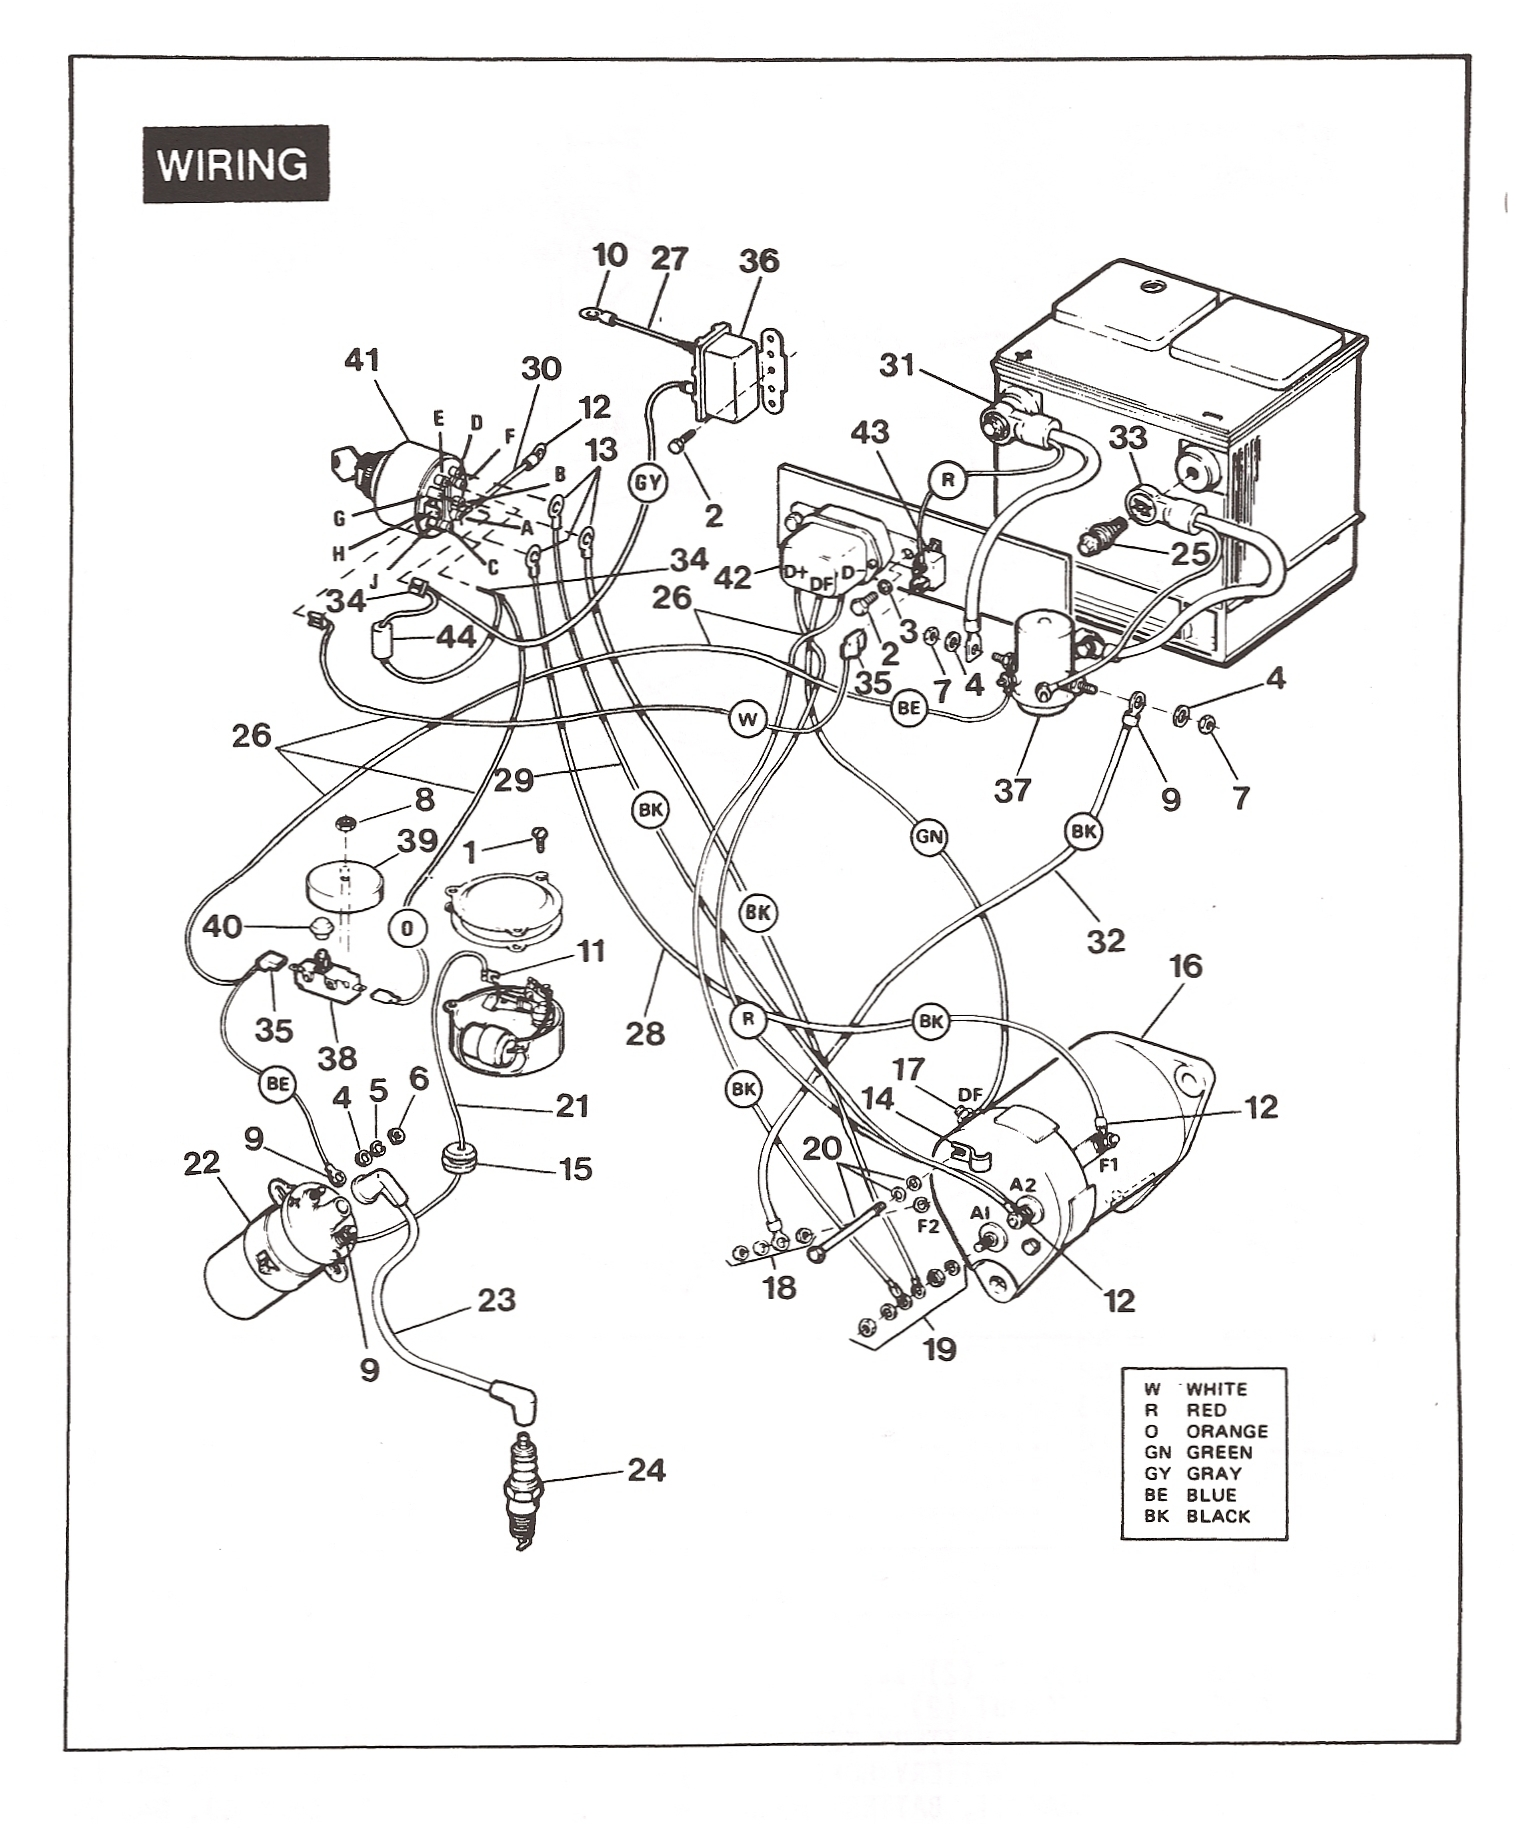 Wiring Diagram For A 82 Ezgo Gas Golf Cart